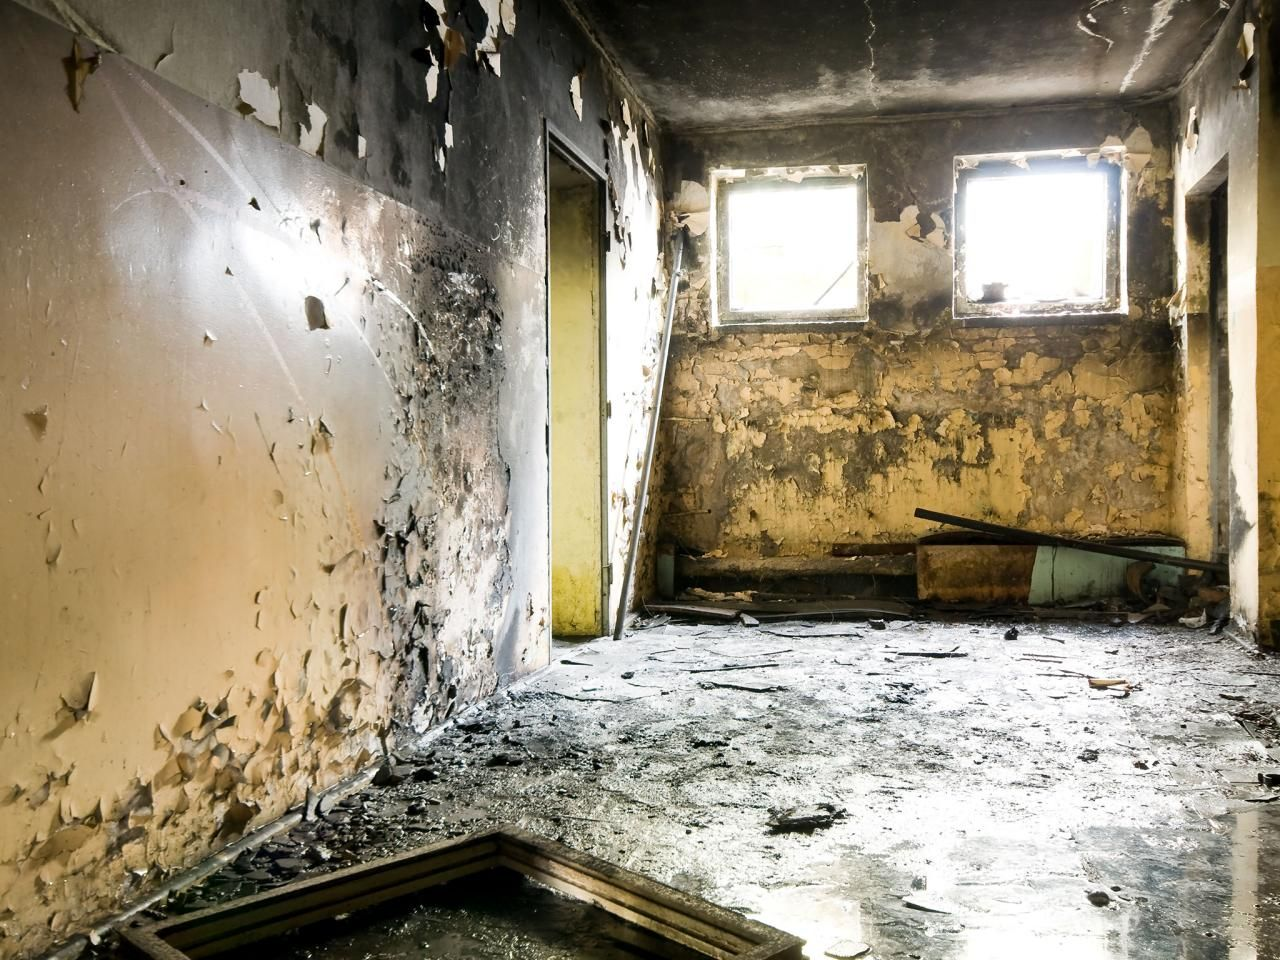 Black Mold Symptoms and Health Effects Black mold